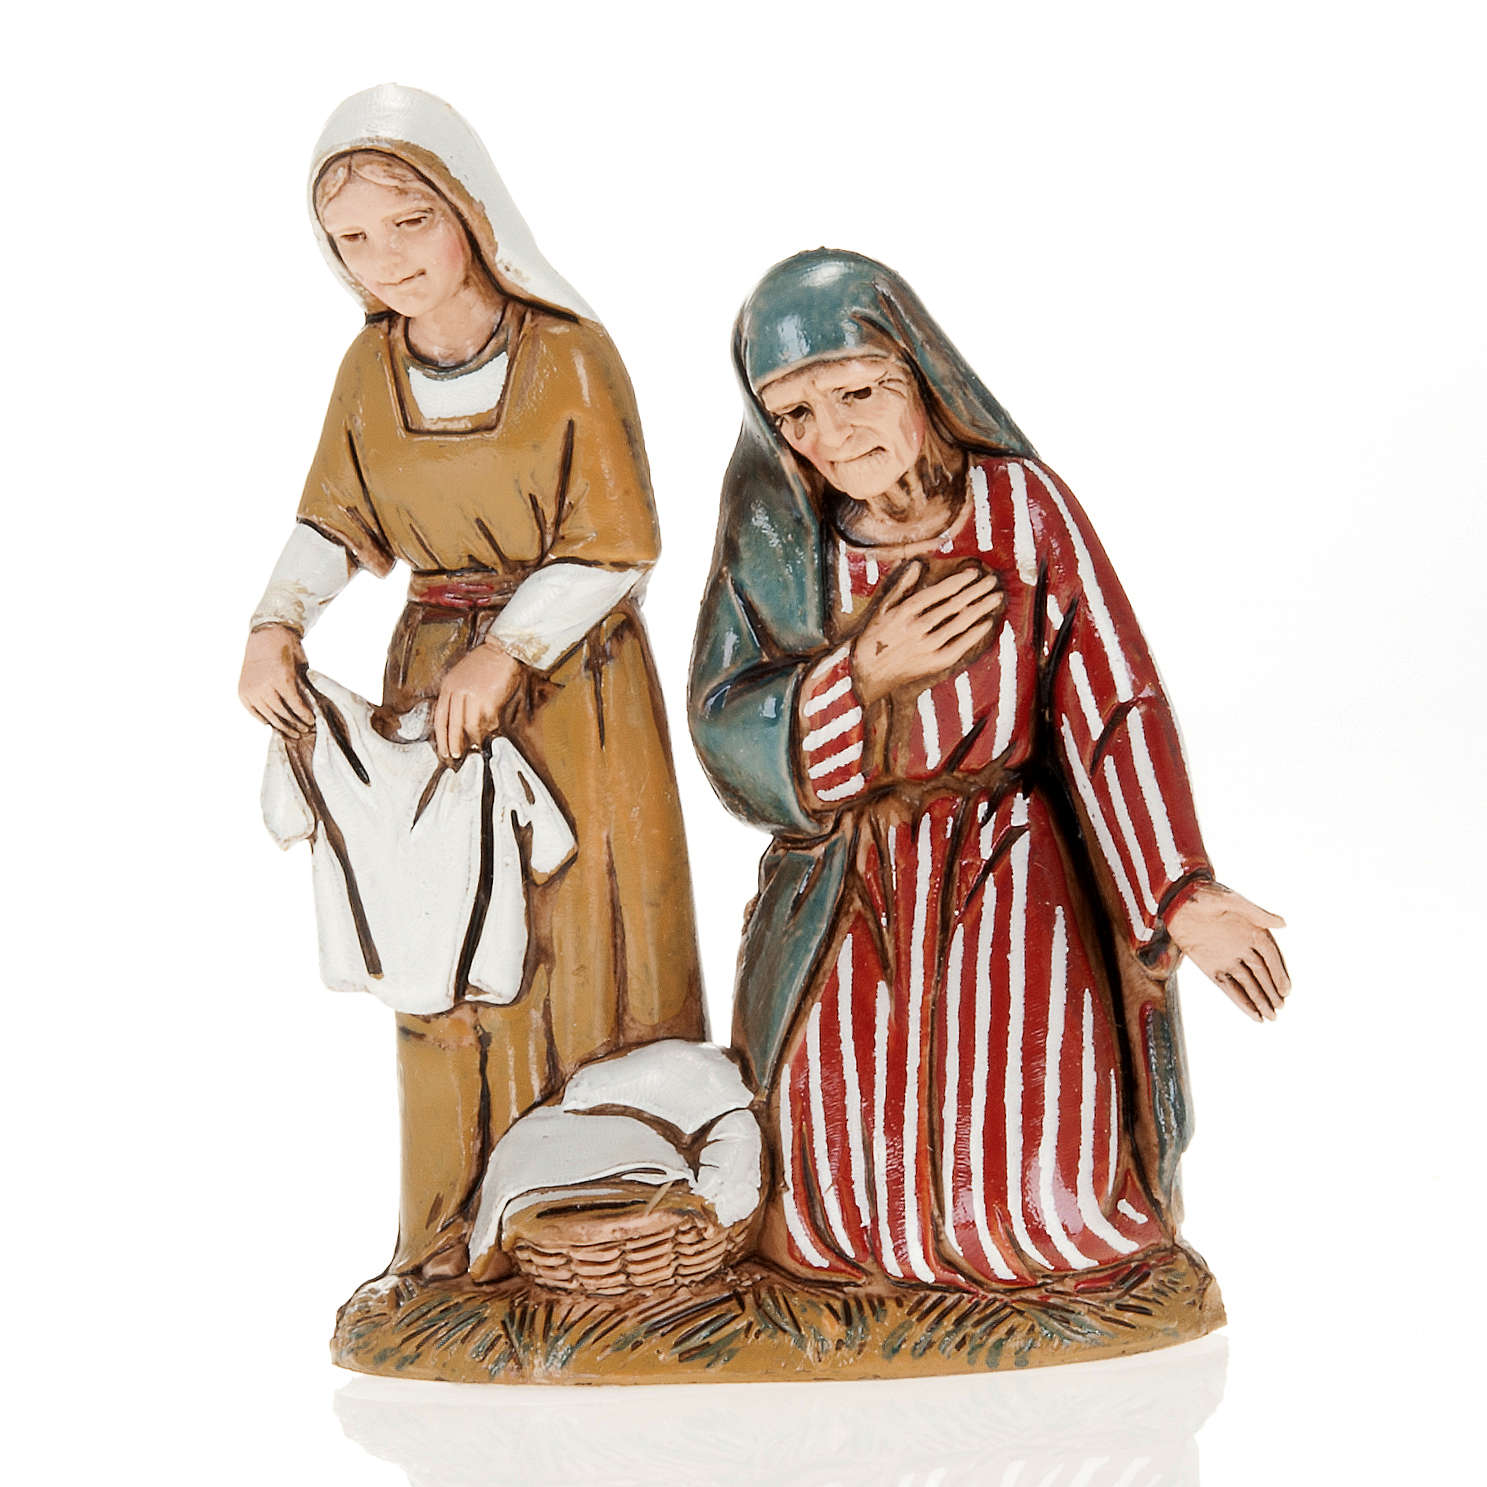 Old lady and child with cloths, nativity figurines, 10cm Moranduzzo 4